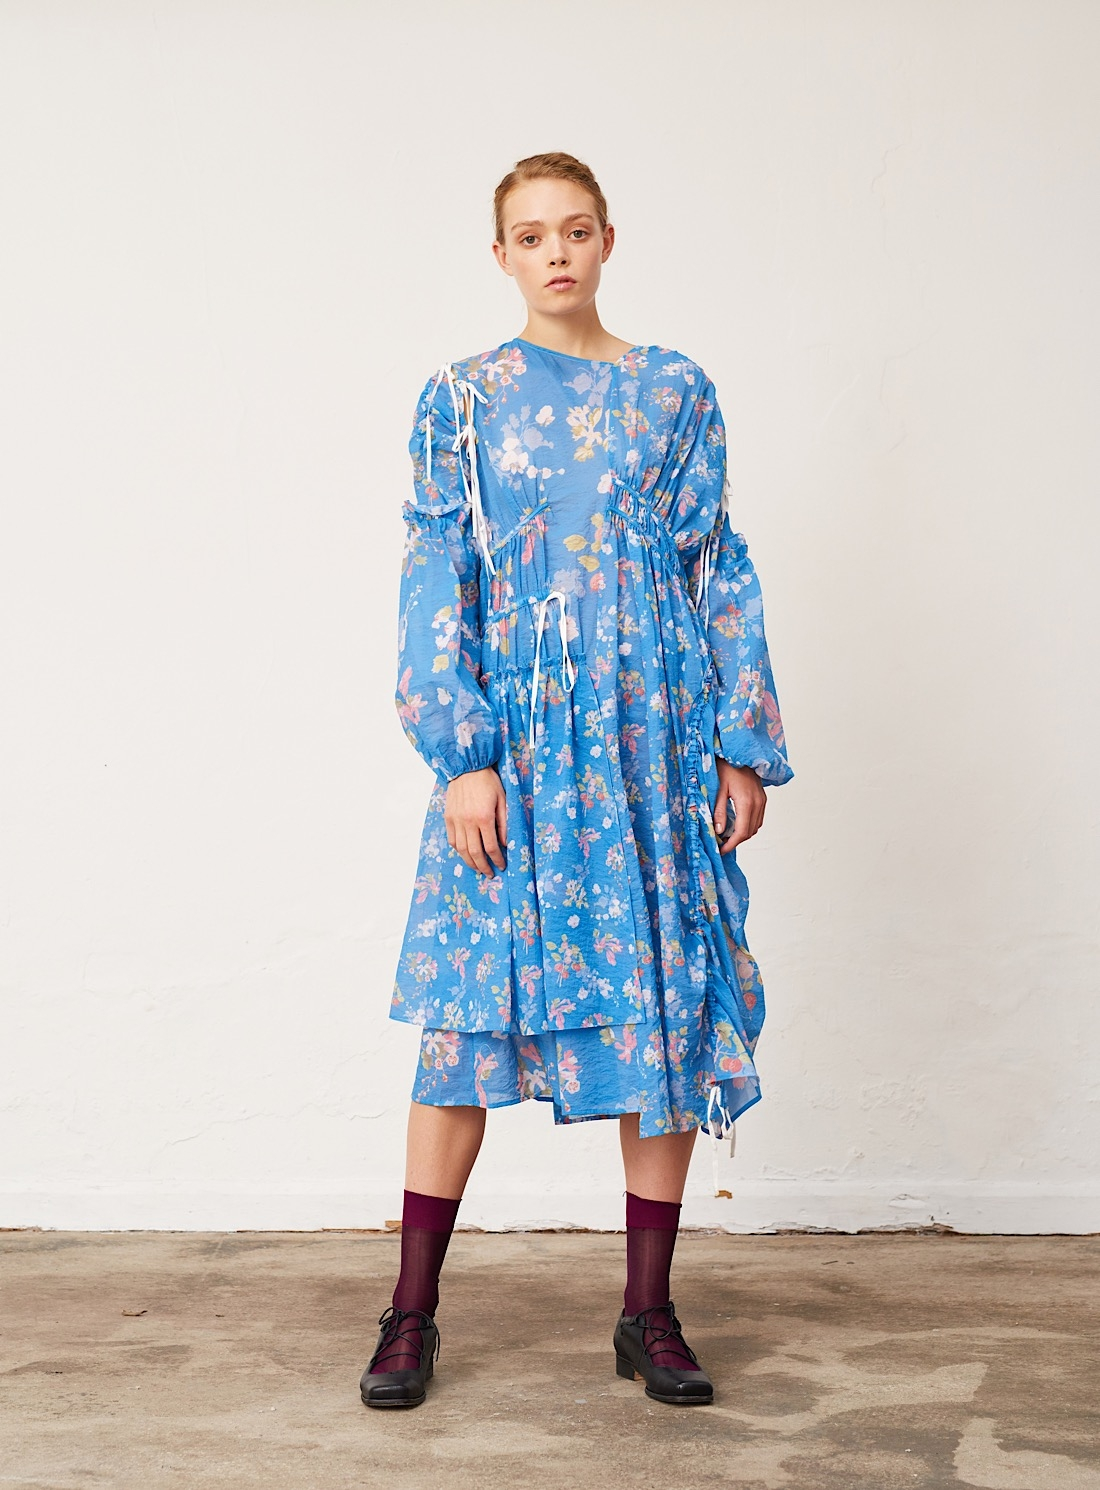 24116-young-british-designers-blue-fruit-and-floral-dress-by-renli-su_raw.jpg